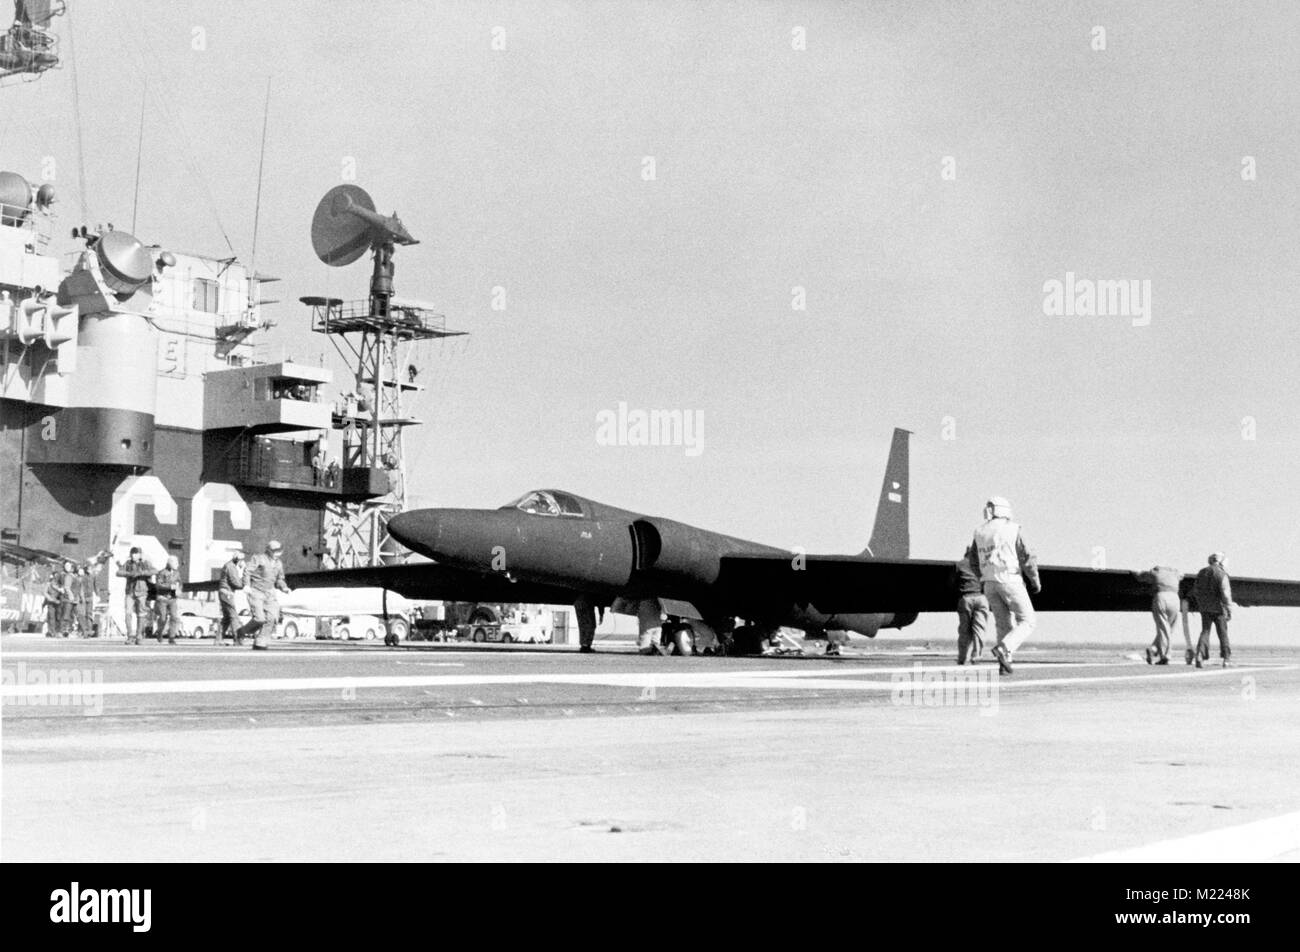 U-2 reconnaissance aircraft on the flight deck of the aircraft carrier USS AMERICA - Stock Image